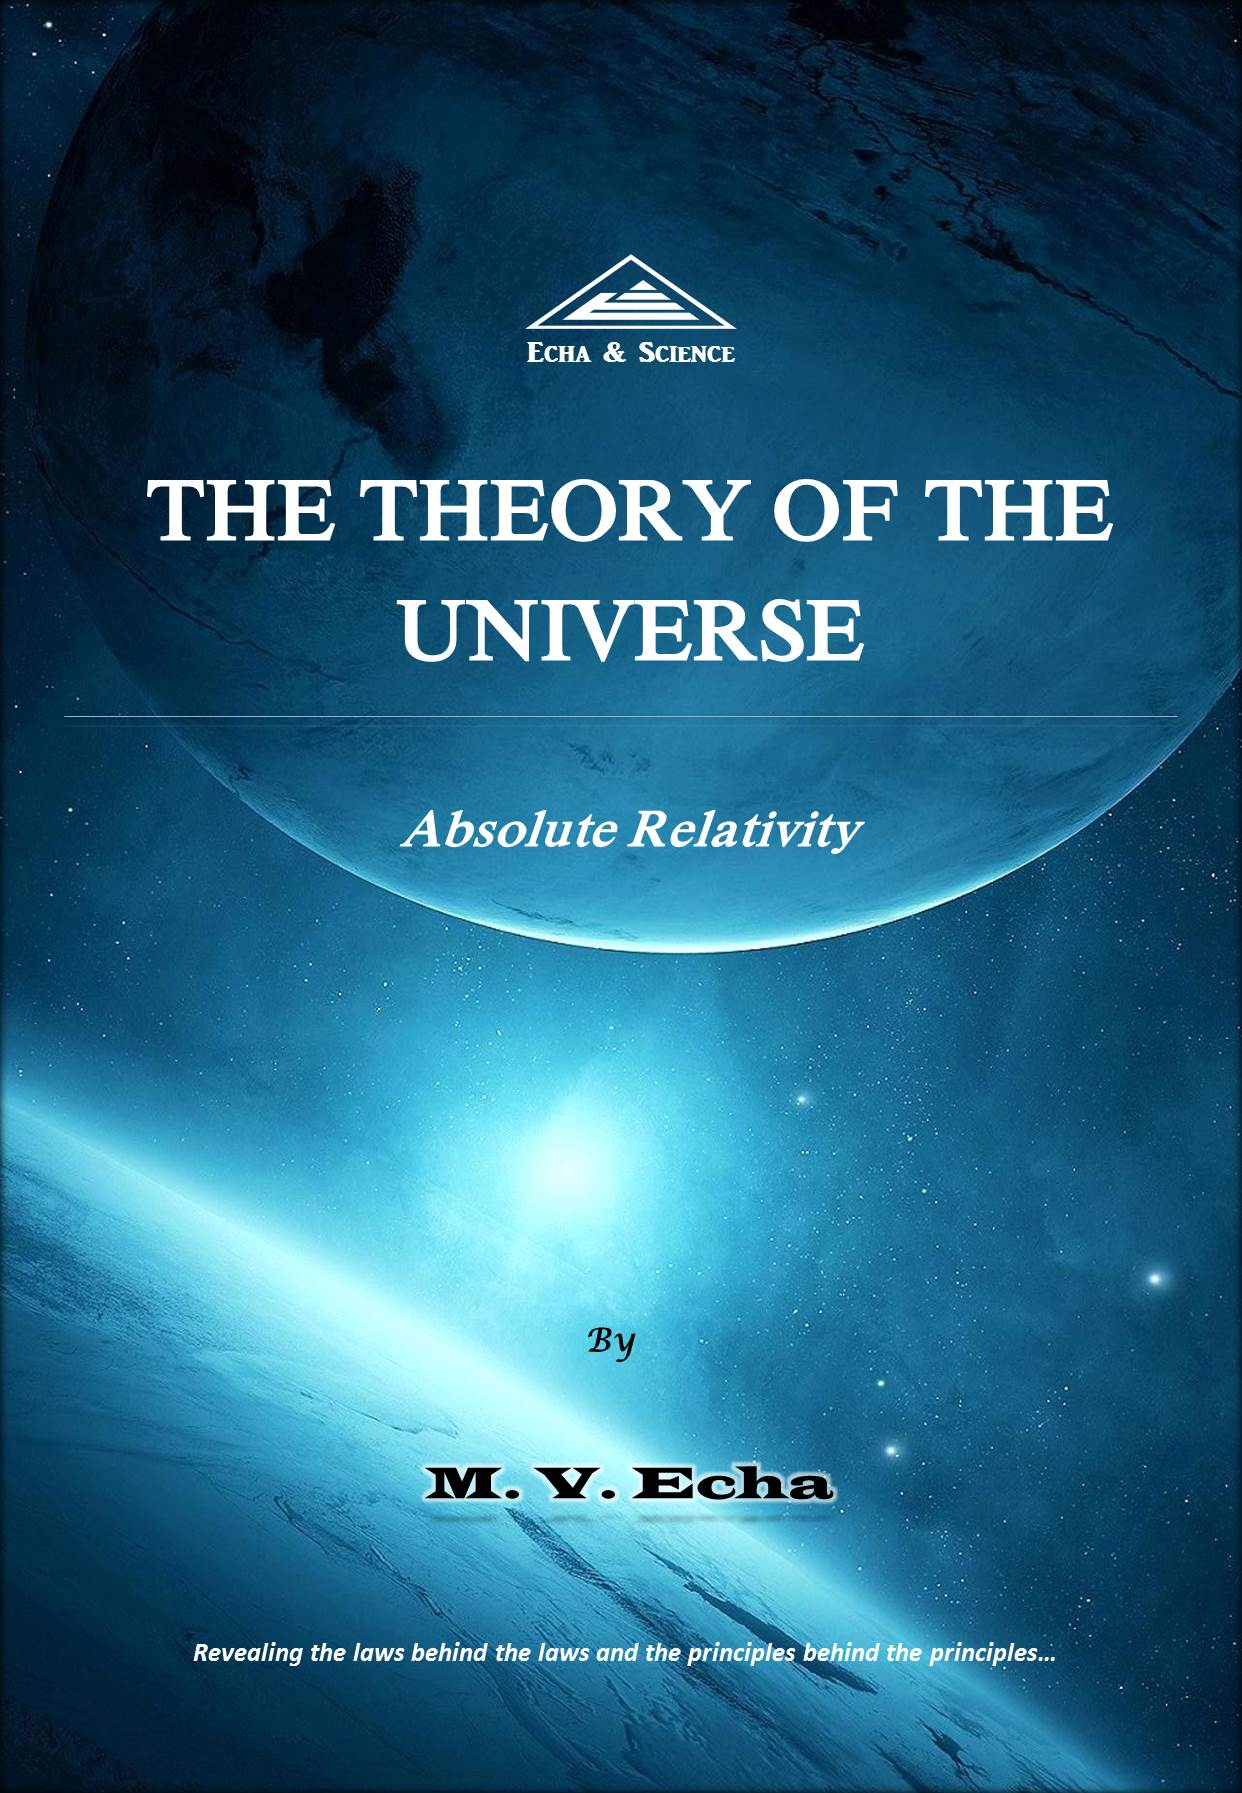 The Theory of the Universe